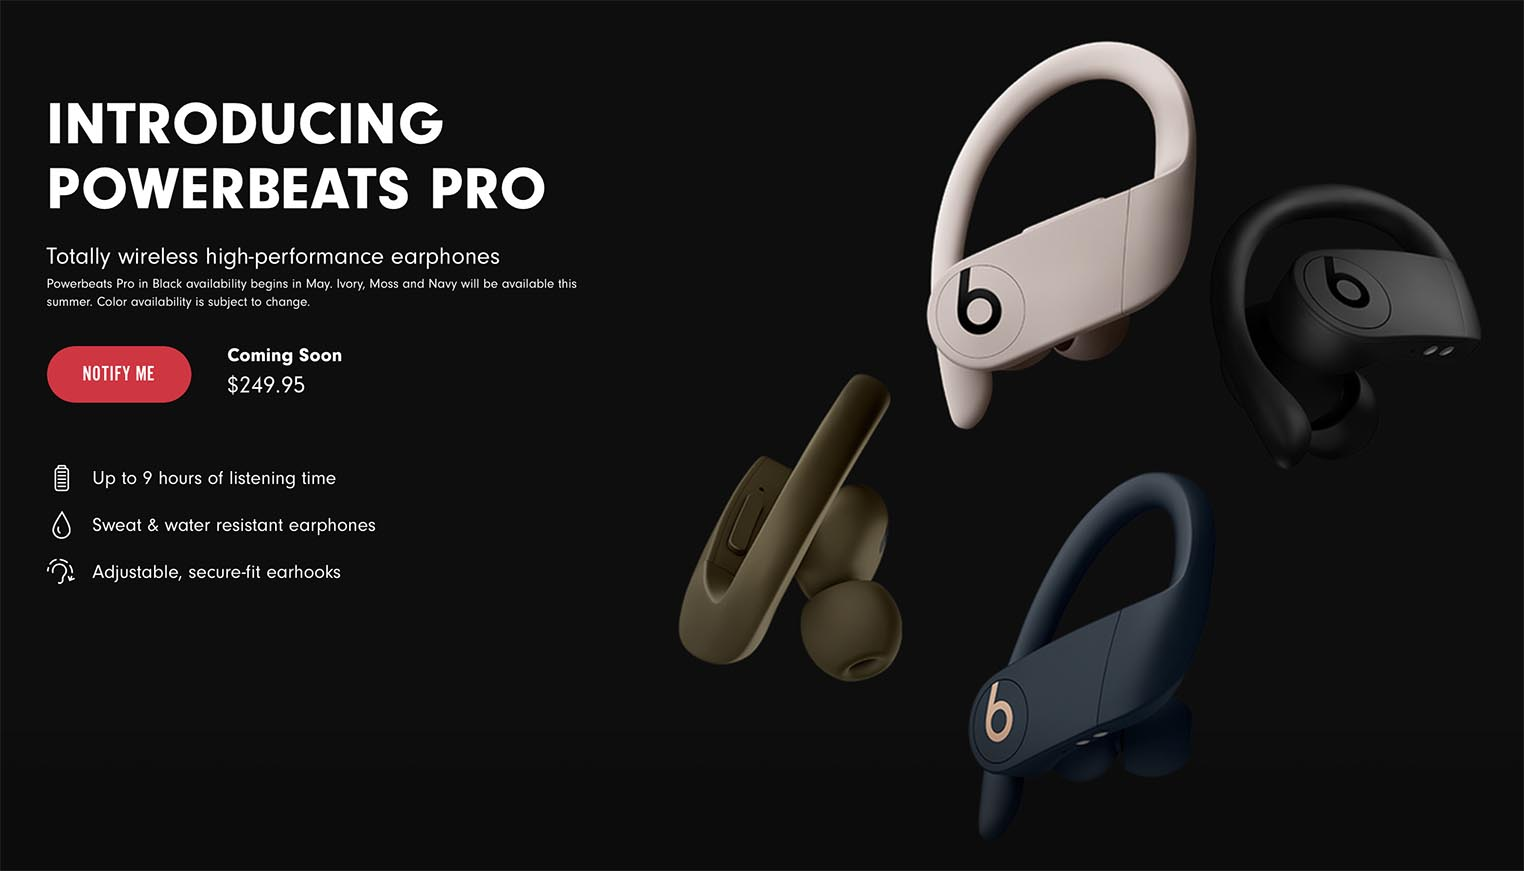 Introducing Powerbeats Pro